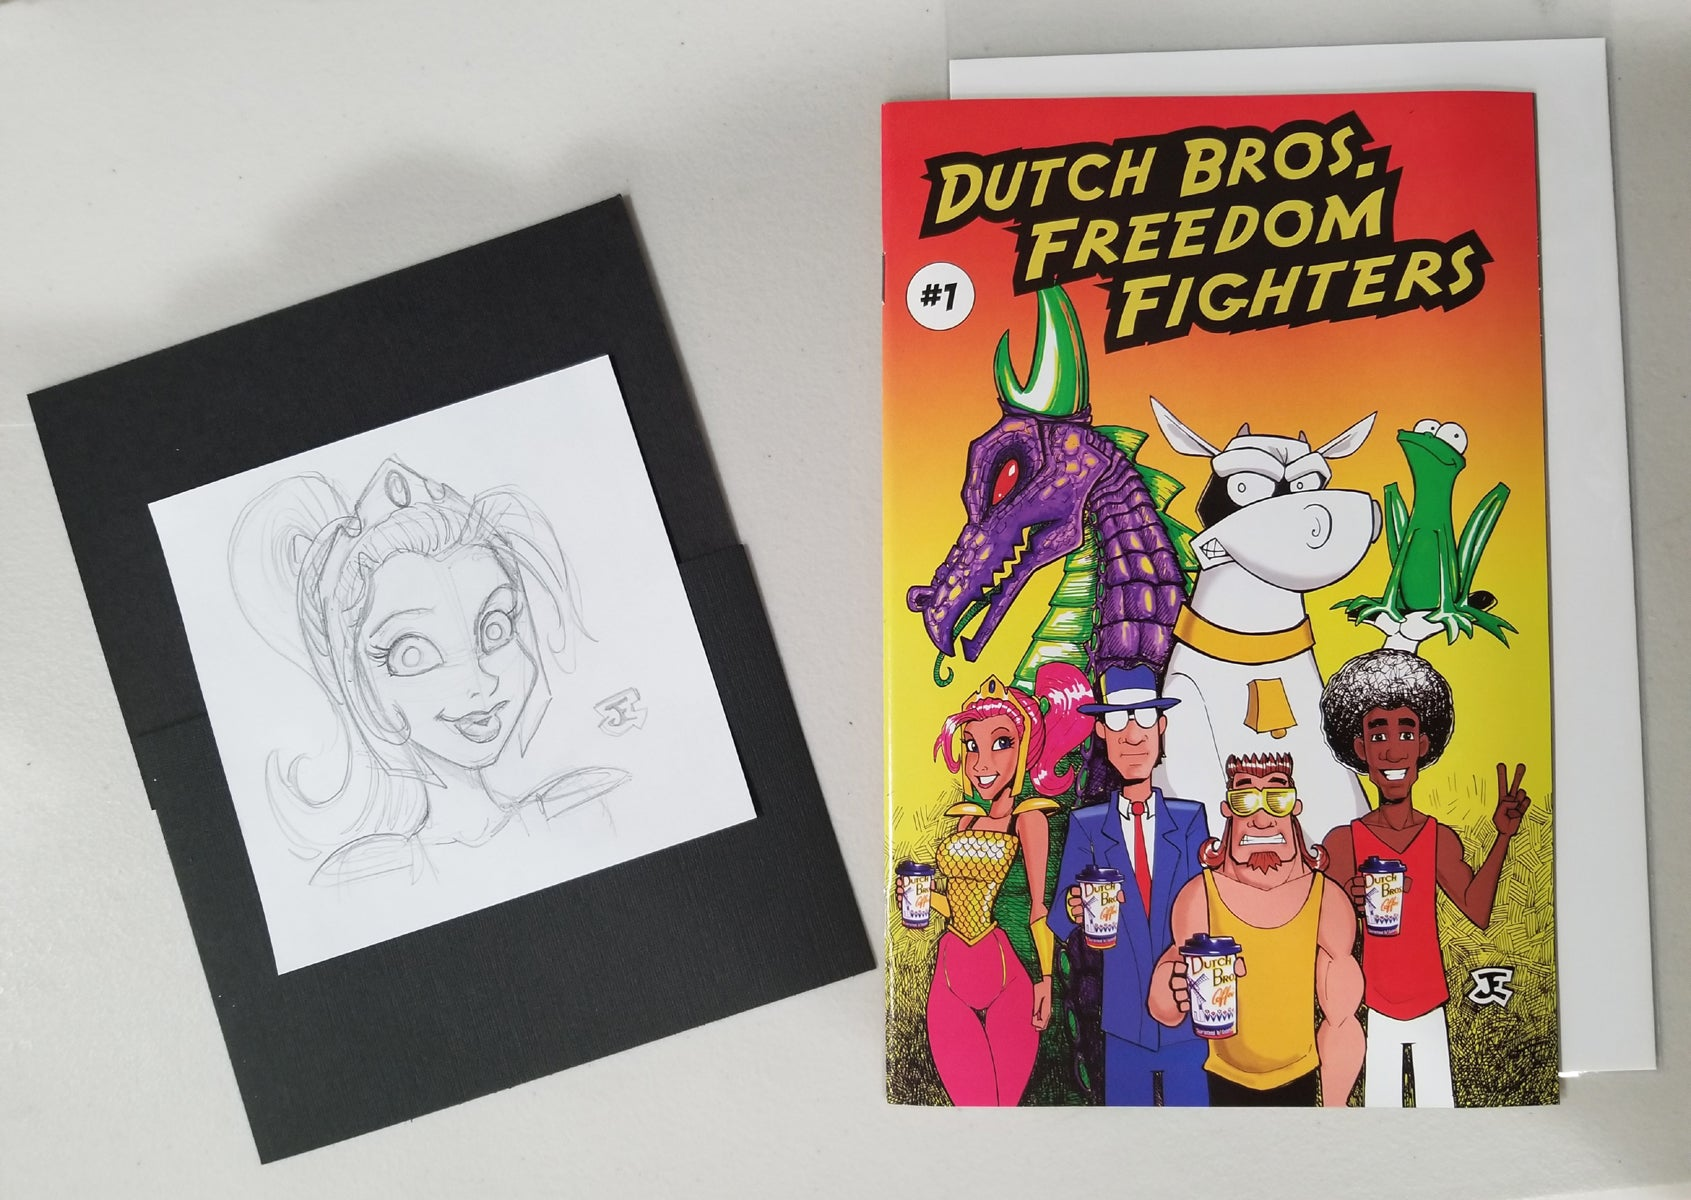 Dutch Bros Freedom Fighters Comic #1 with Artist Sketch